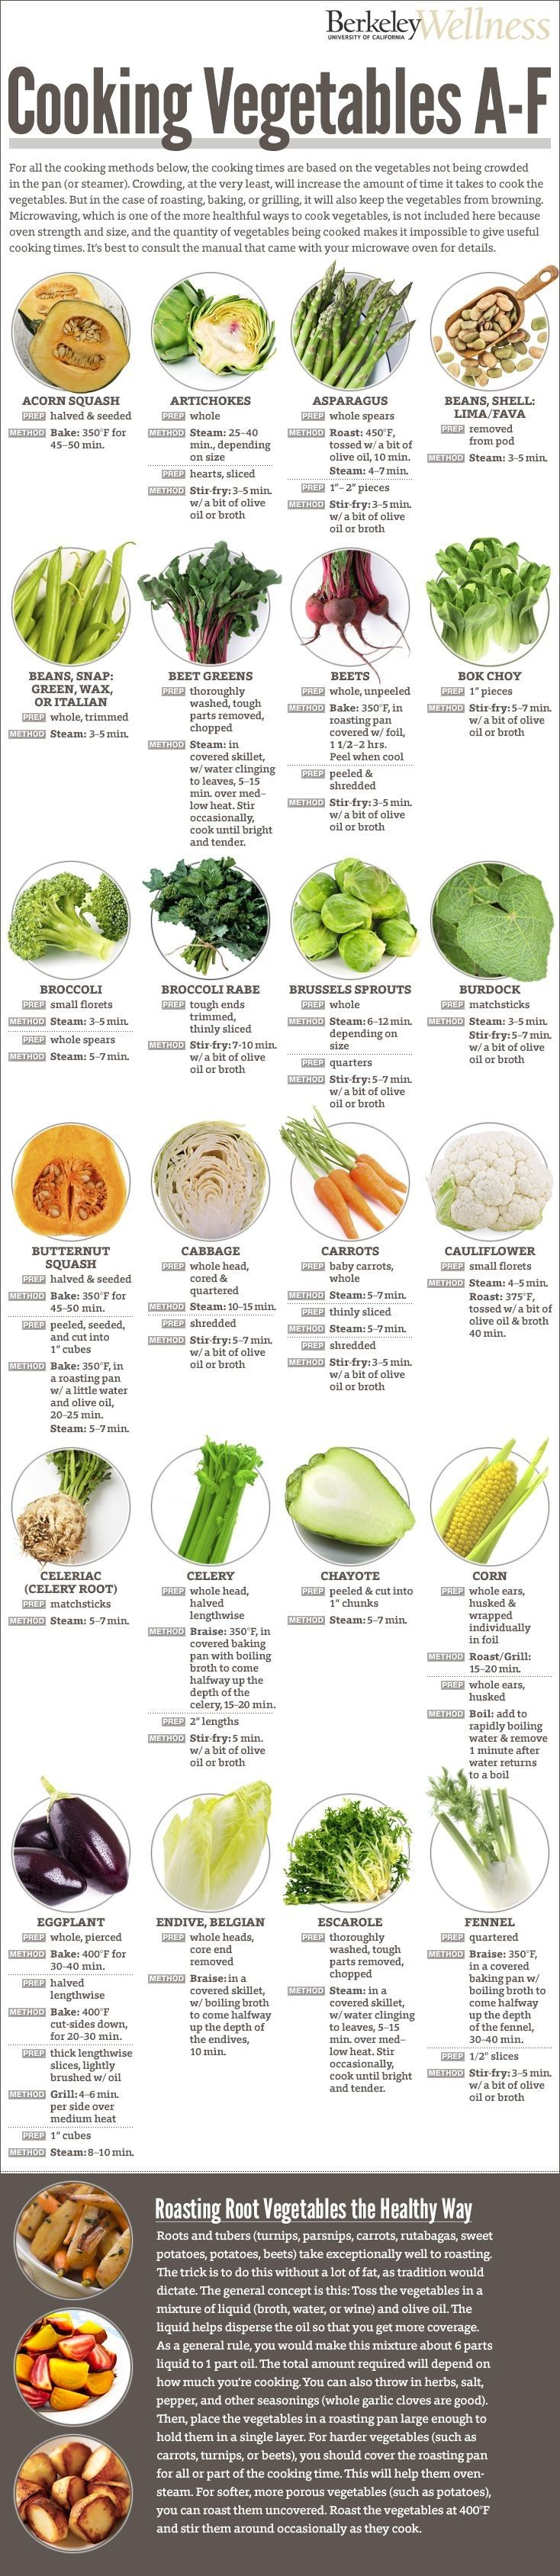 This Cooking Guide Reveals the Healthiest Way to Cook Veggies (Part 1): Want to know the healthiest way to cook your vegetables? Berkeley Wellness has prepared this comprehensive guide that reveals the best methods for cooking your delicious crops! We'll start with vegetables starting from letters A to F in this first part. Please remember to share this post on your favorite social networks!